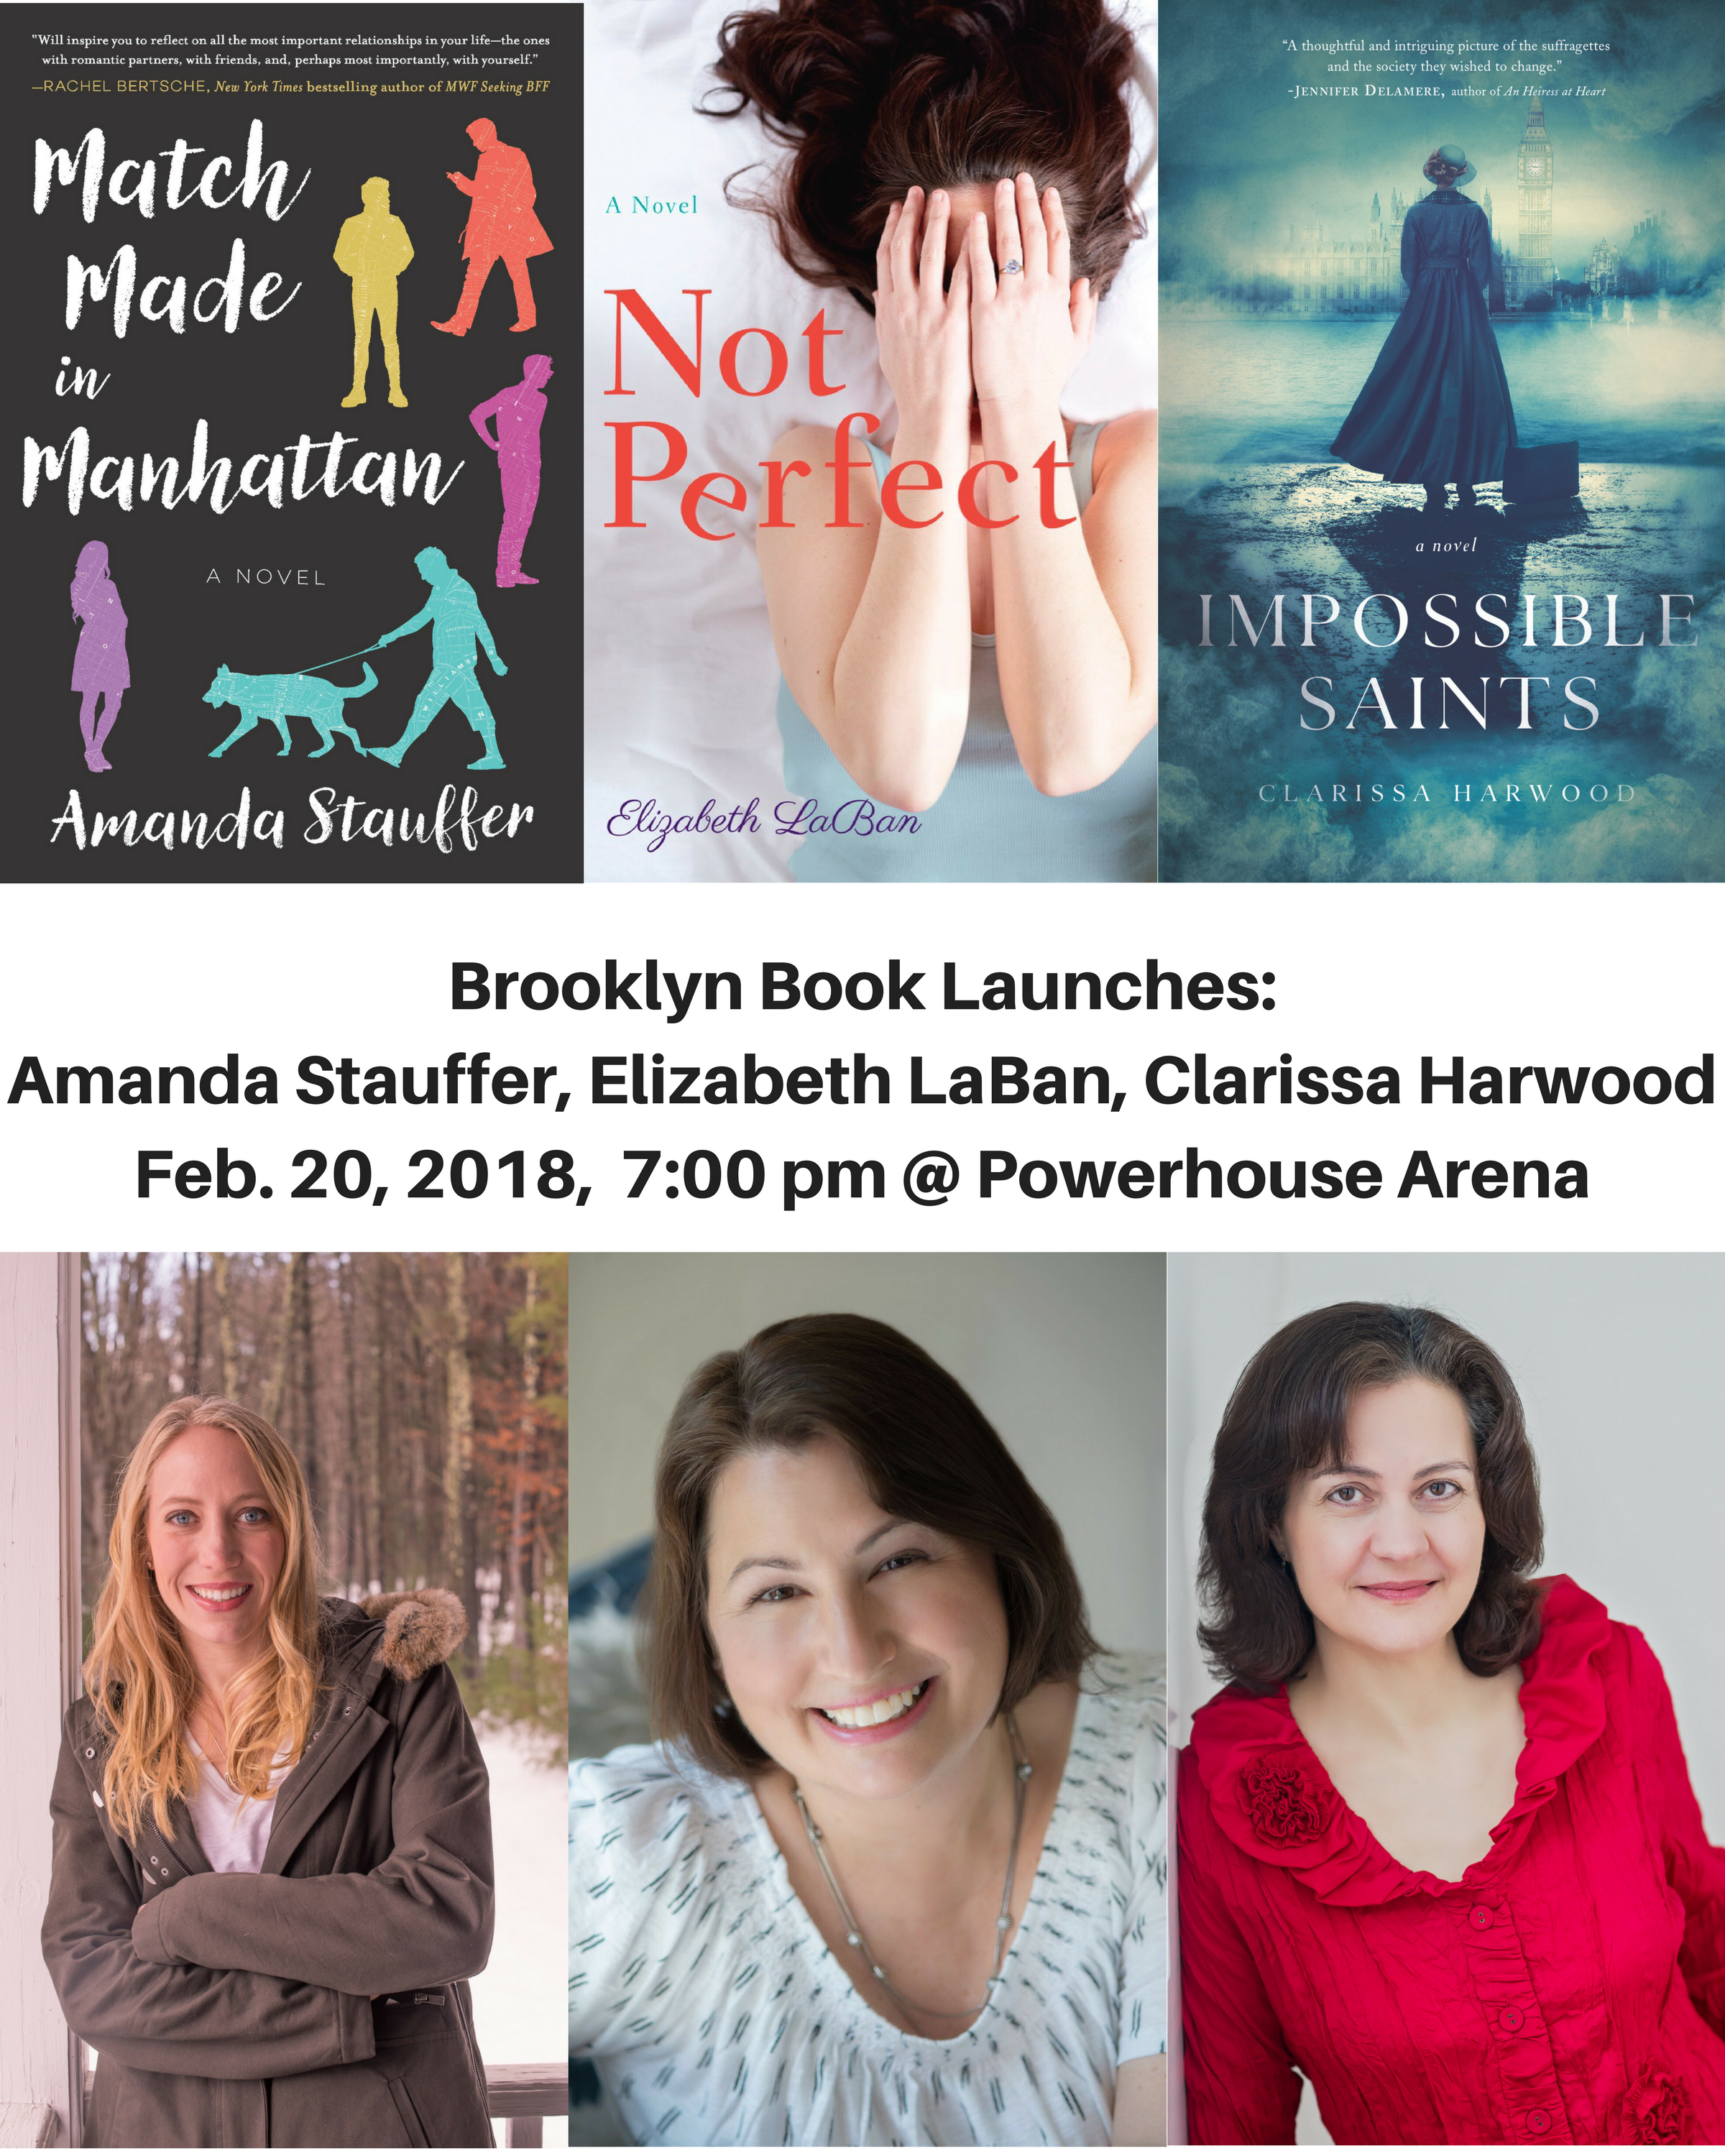 Brooklyn Book Launches: Impossible Saints by Clarissa Harwood; Match Made in Manhattan by Amanda Stauffer; & Not Perfect by Elizabeth LaBan